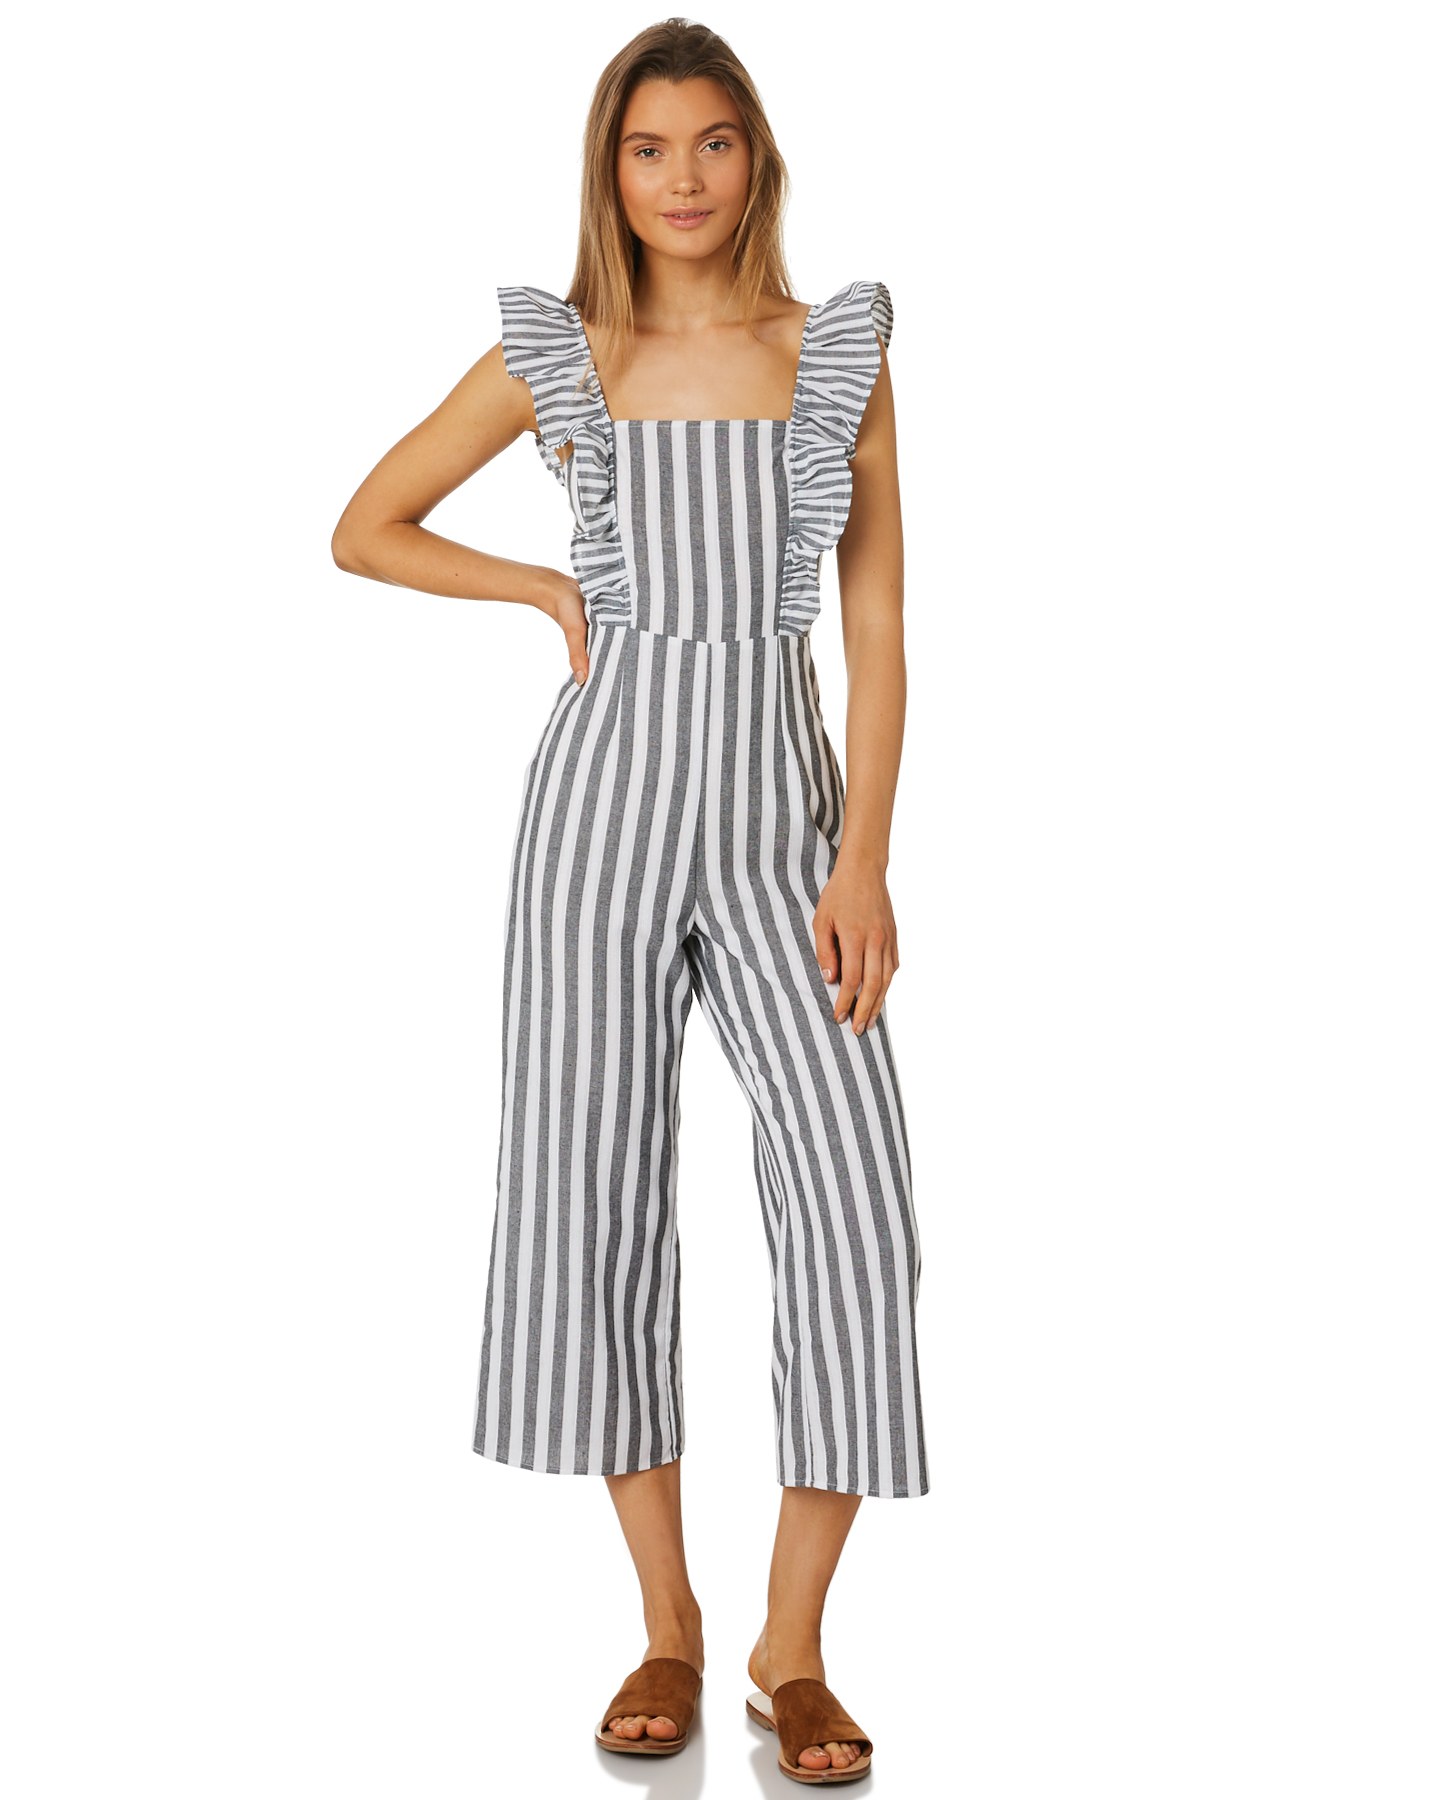 This is a picture of Lively The Fifth Label Moonlit Jumpsuit